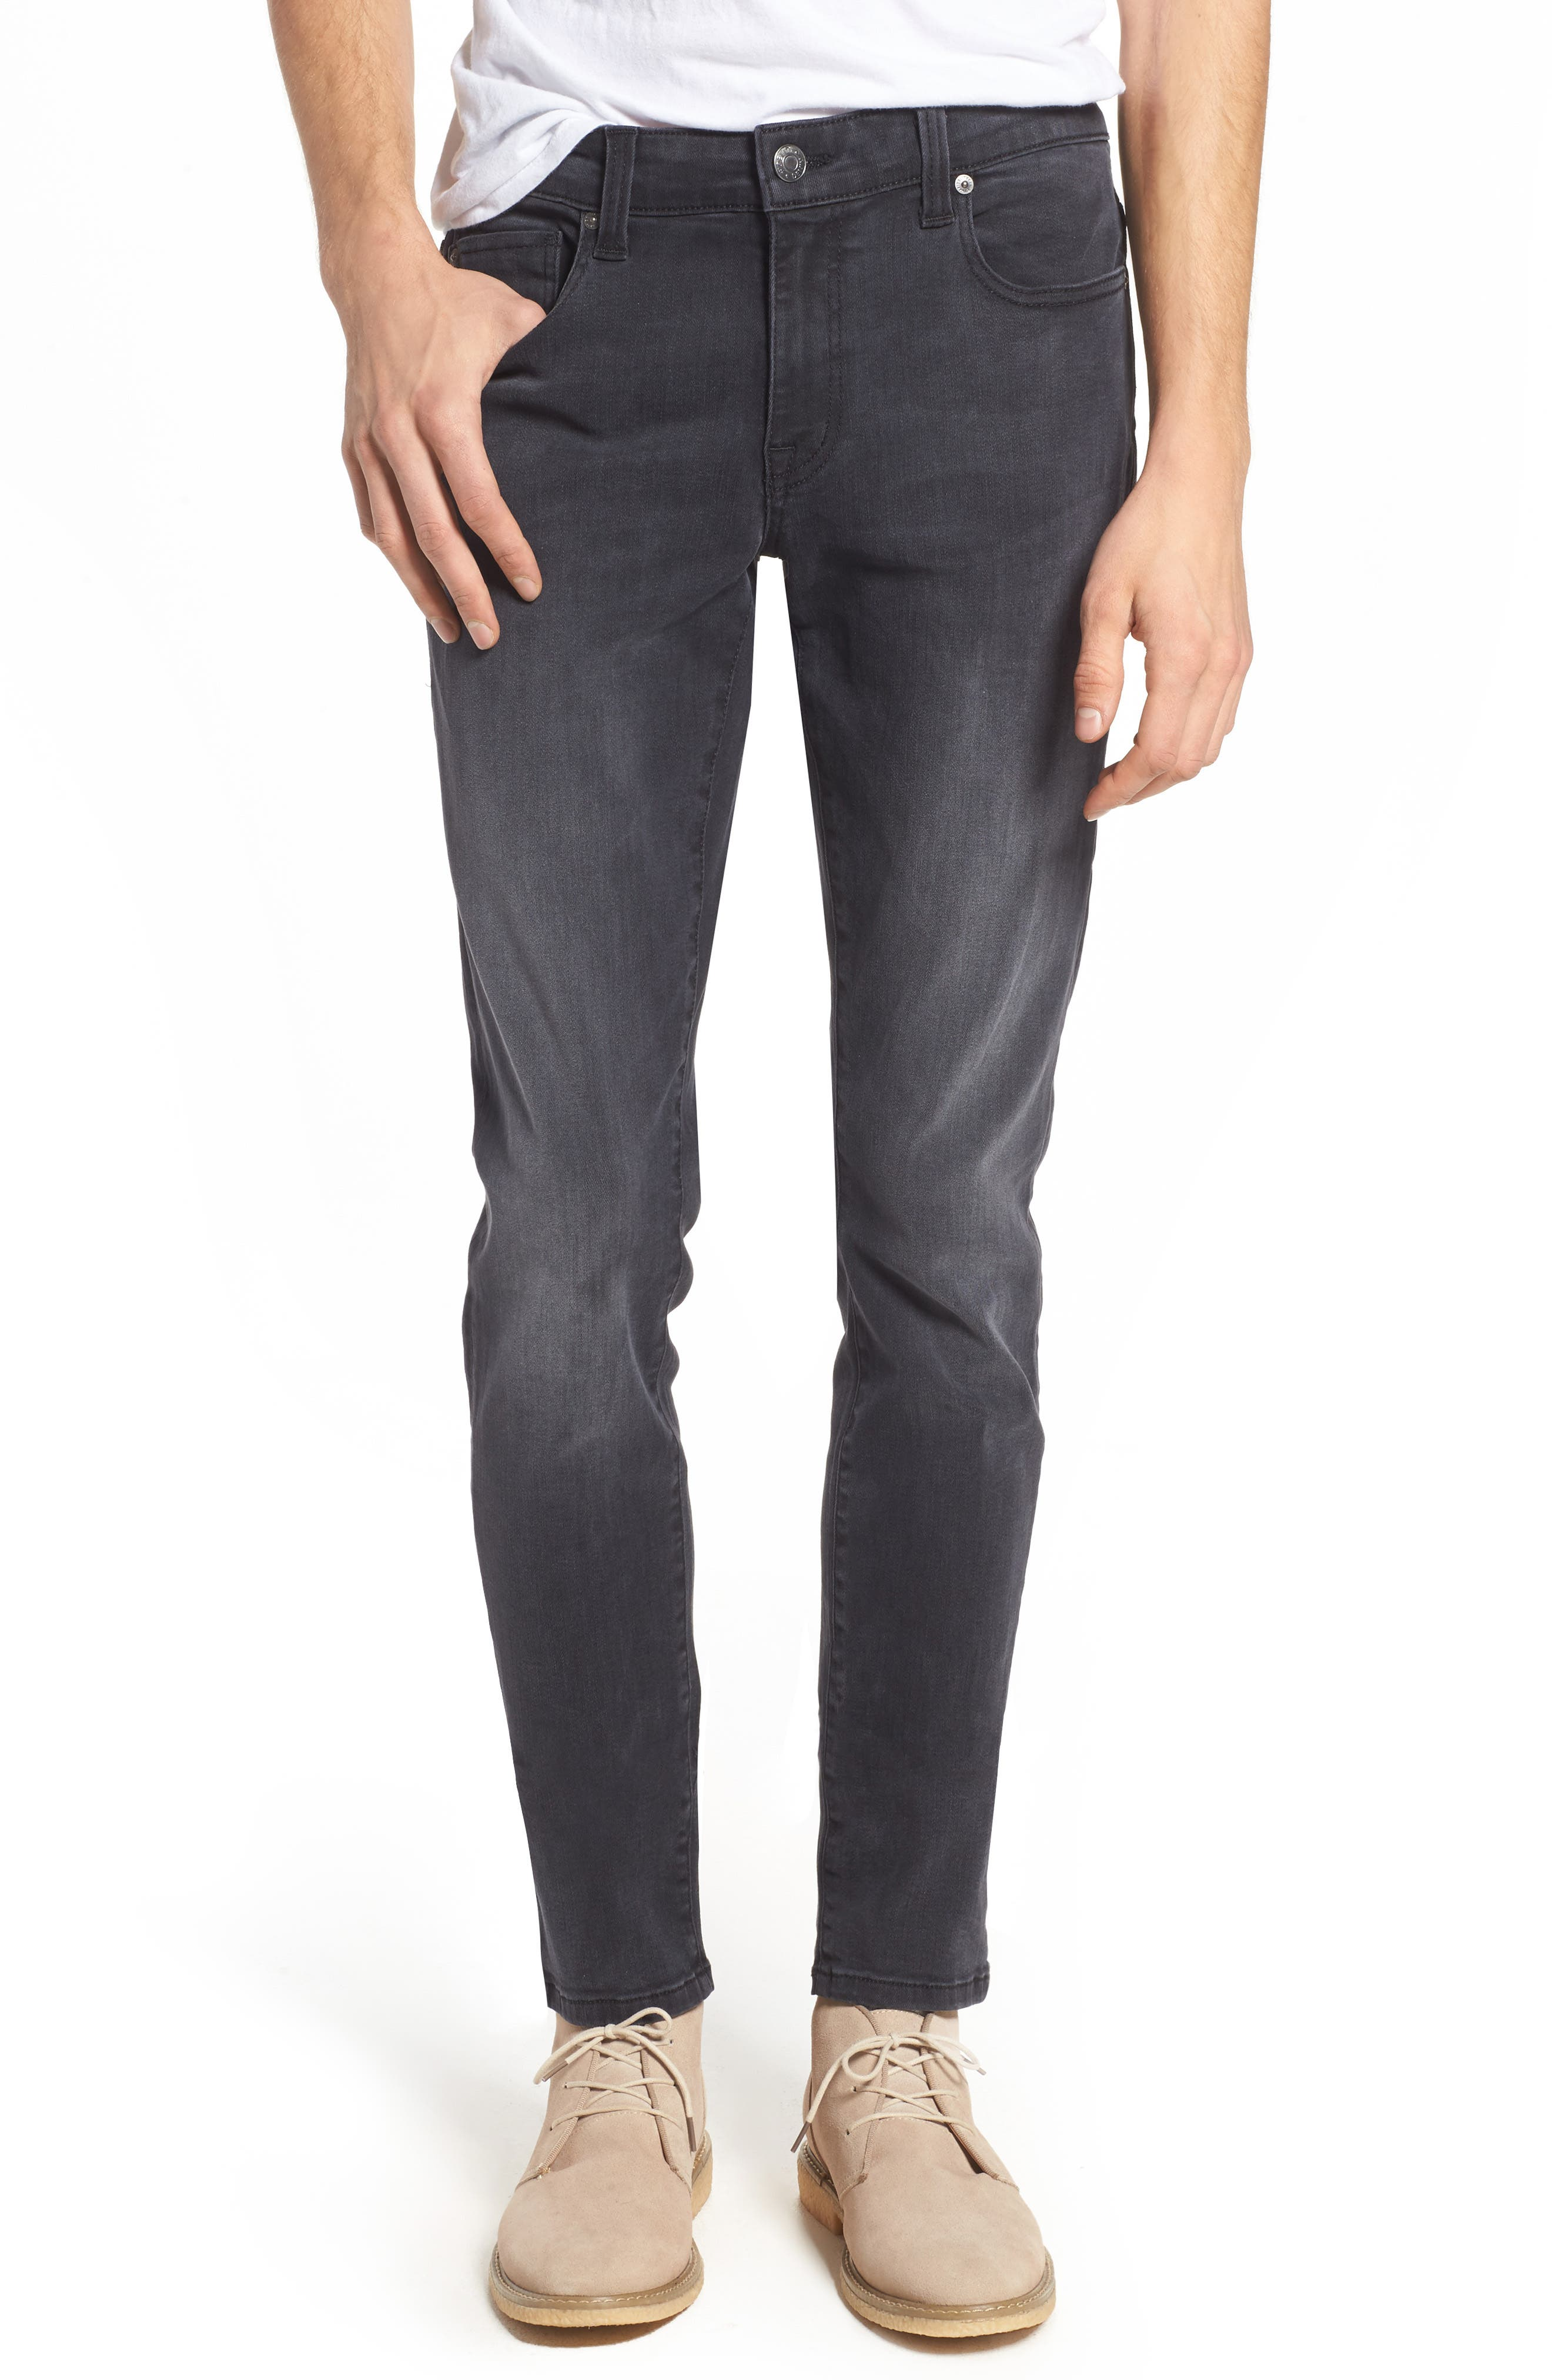 Vantage Skinny Fit Jeans,                             Main thumbnail 1, color,                             Wolf Grey